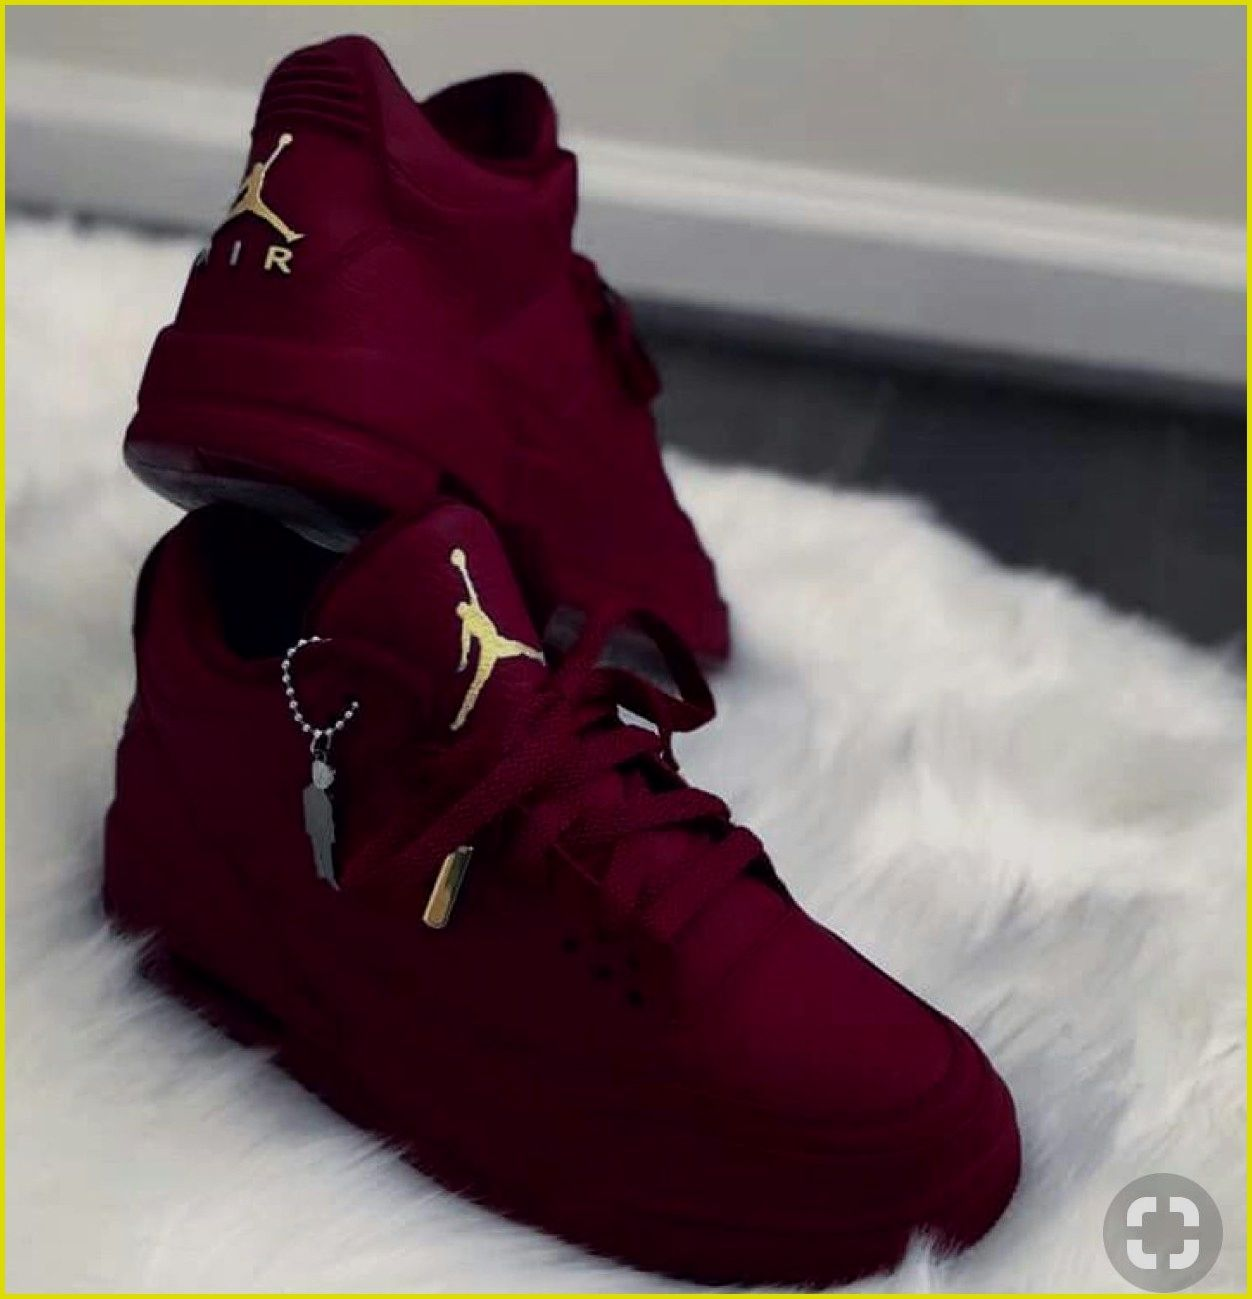 sports shoes ca93d 4df4d Pin by Brittany on Shoes in 2019 | Shoes, Jordans sneakers ...